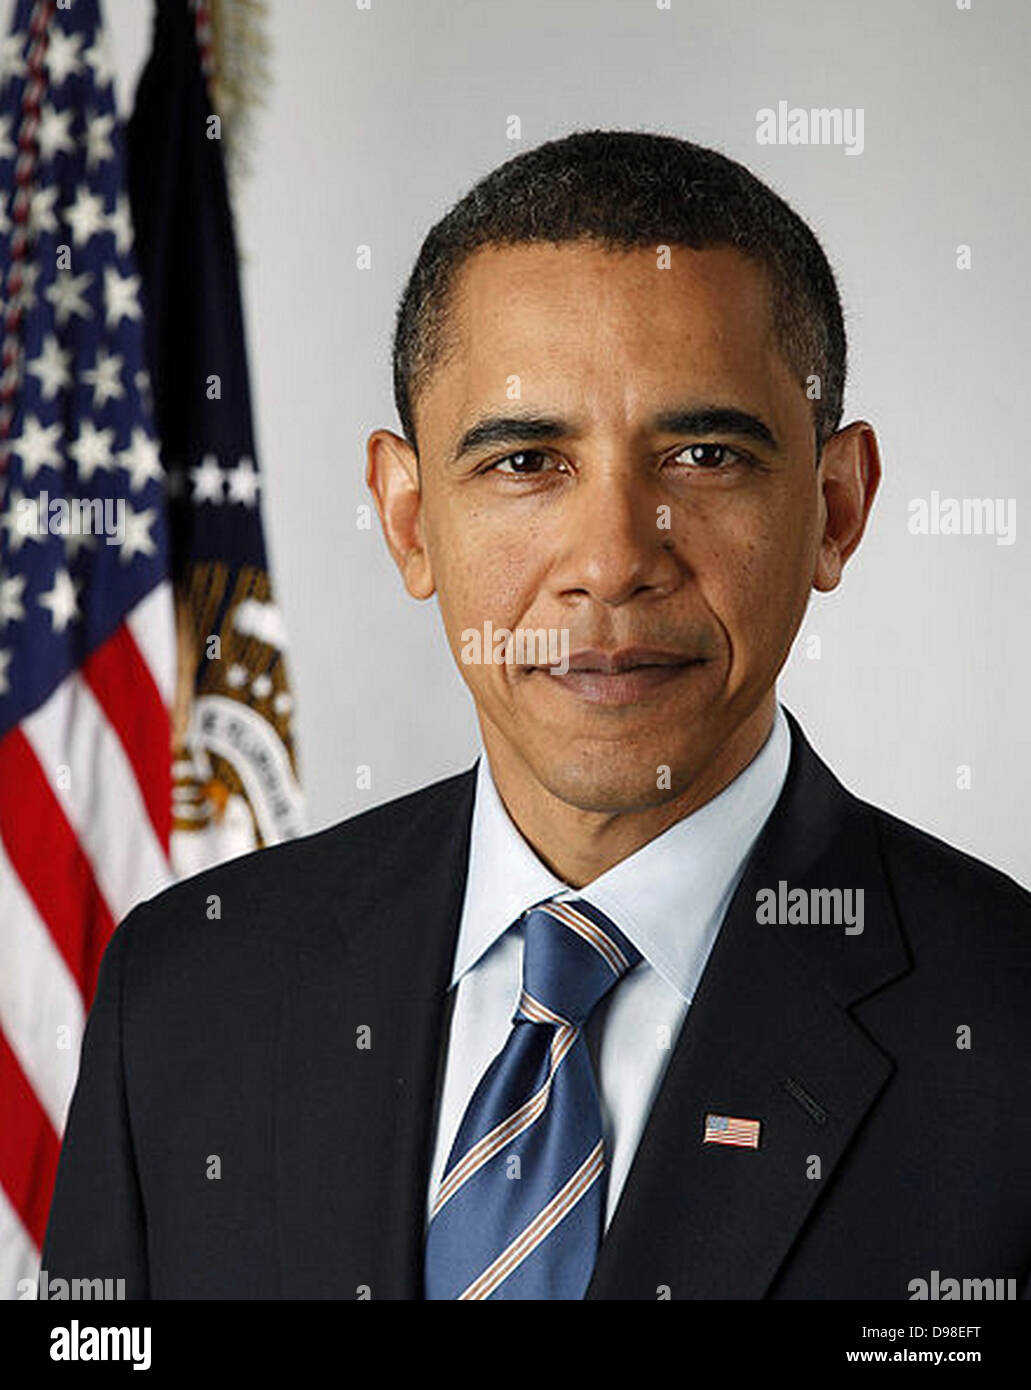 Official portrait of United States President Barack Obama in 2010 - Stock Image